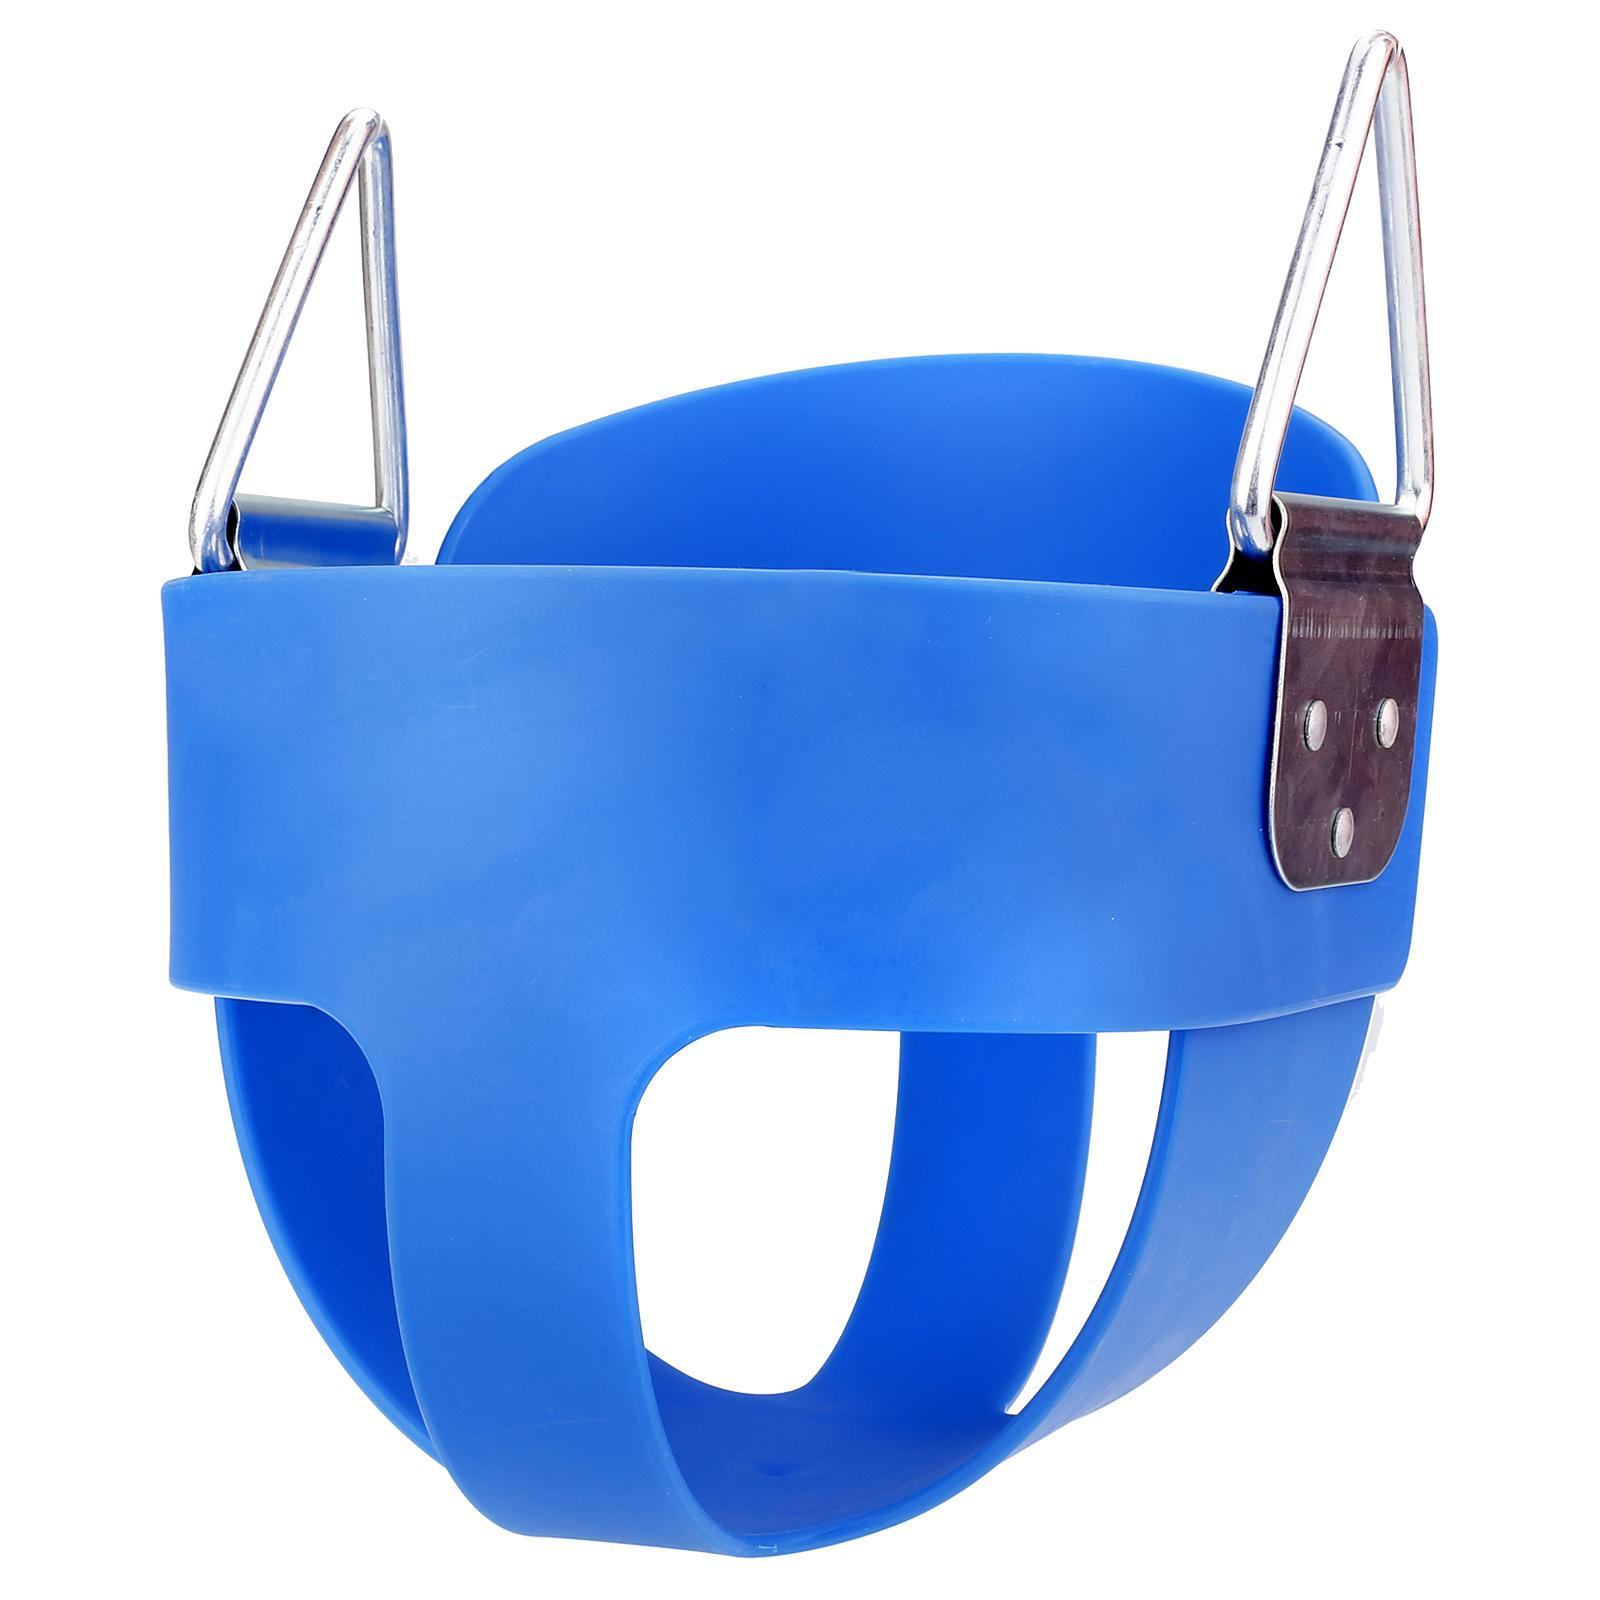 Toddler Baby Swing Children Full Bucket Seat Swing For Outside Playground Park BEDTS by Unbranded